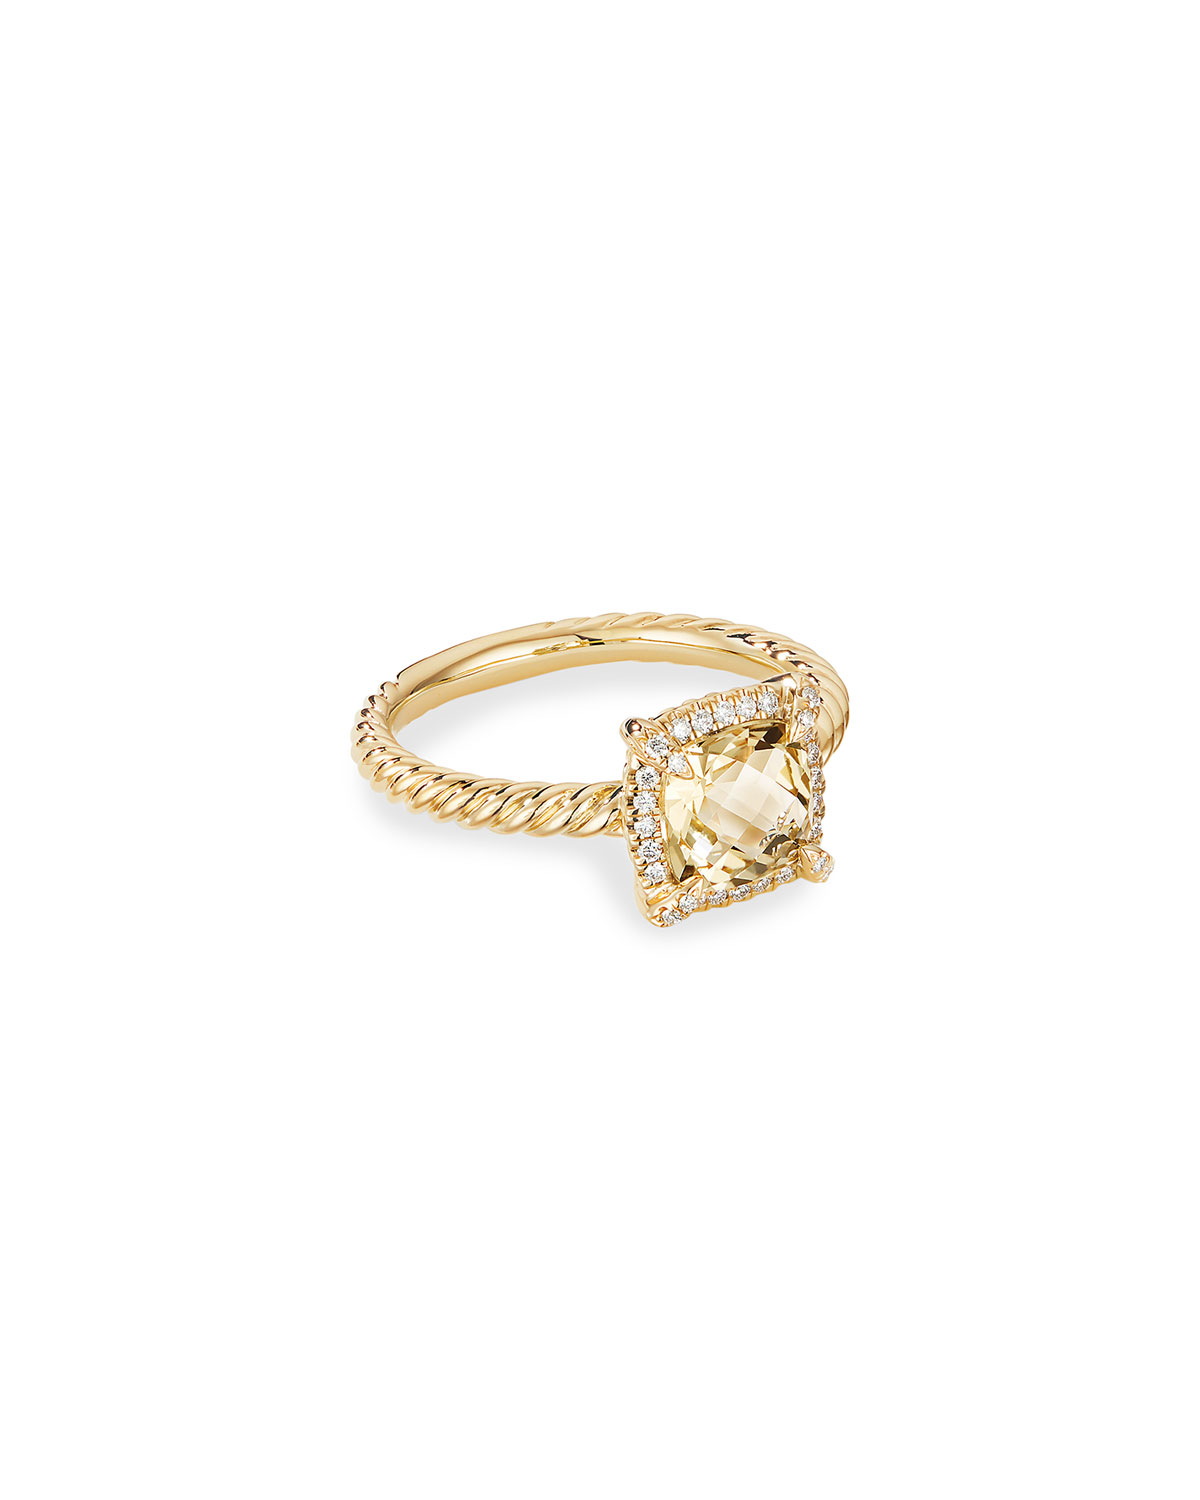 David Yurman Petite Chatelaine Pave Bezel Ring in 18K Gold with Champagne Citrine, Size 8